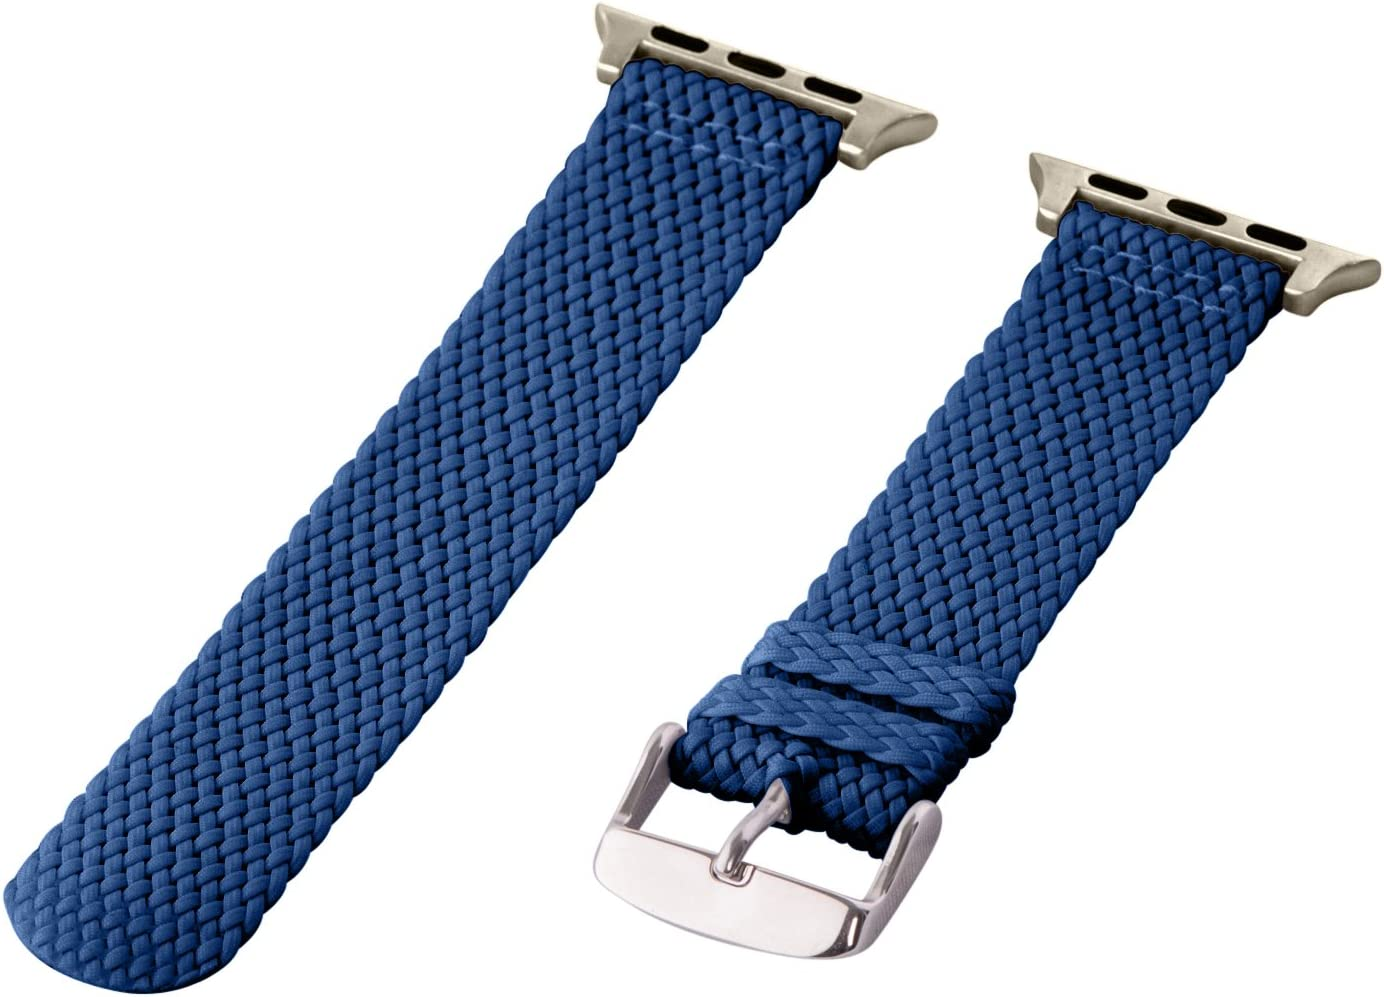 Clockwork Synergy - 2 Piece Perlon Braided Nylon Bands for Apple Watch (38mm Navy)